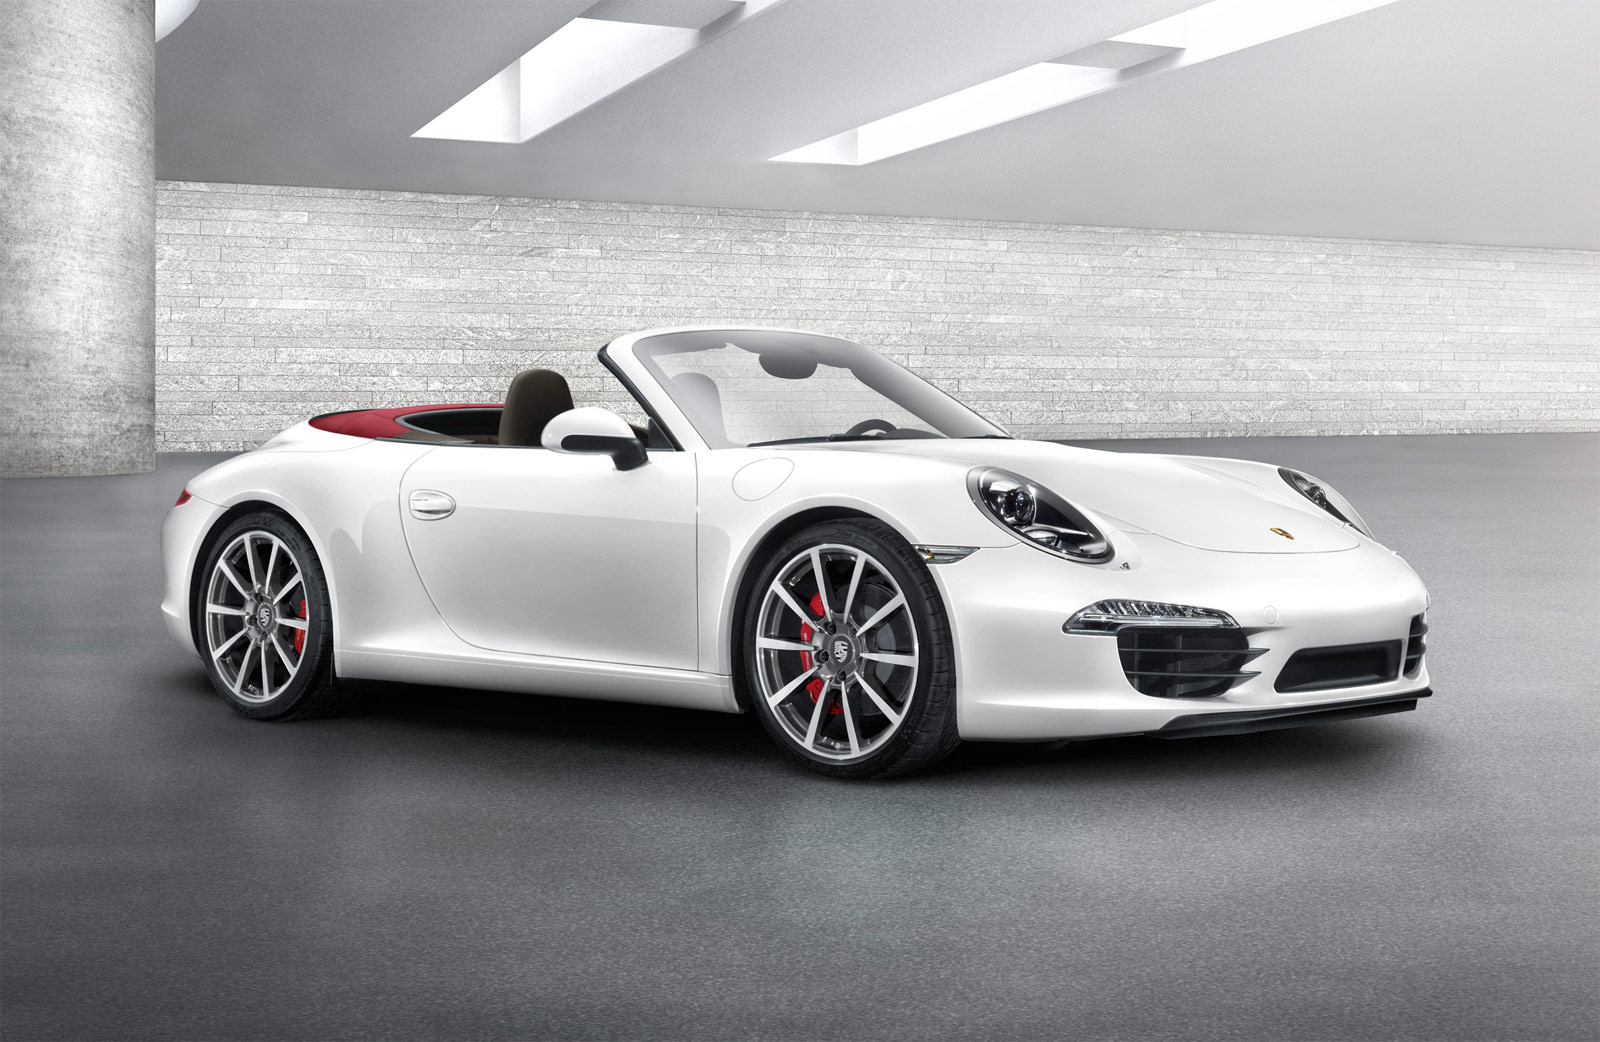 PORSCHE 911 CARRERA S CABRIOLET Photos Images and Wallpapers 1600x1042